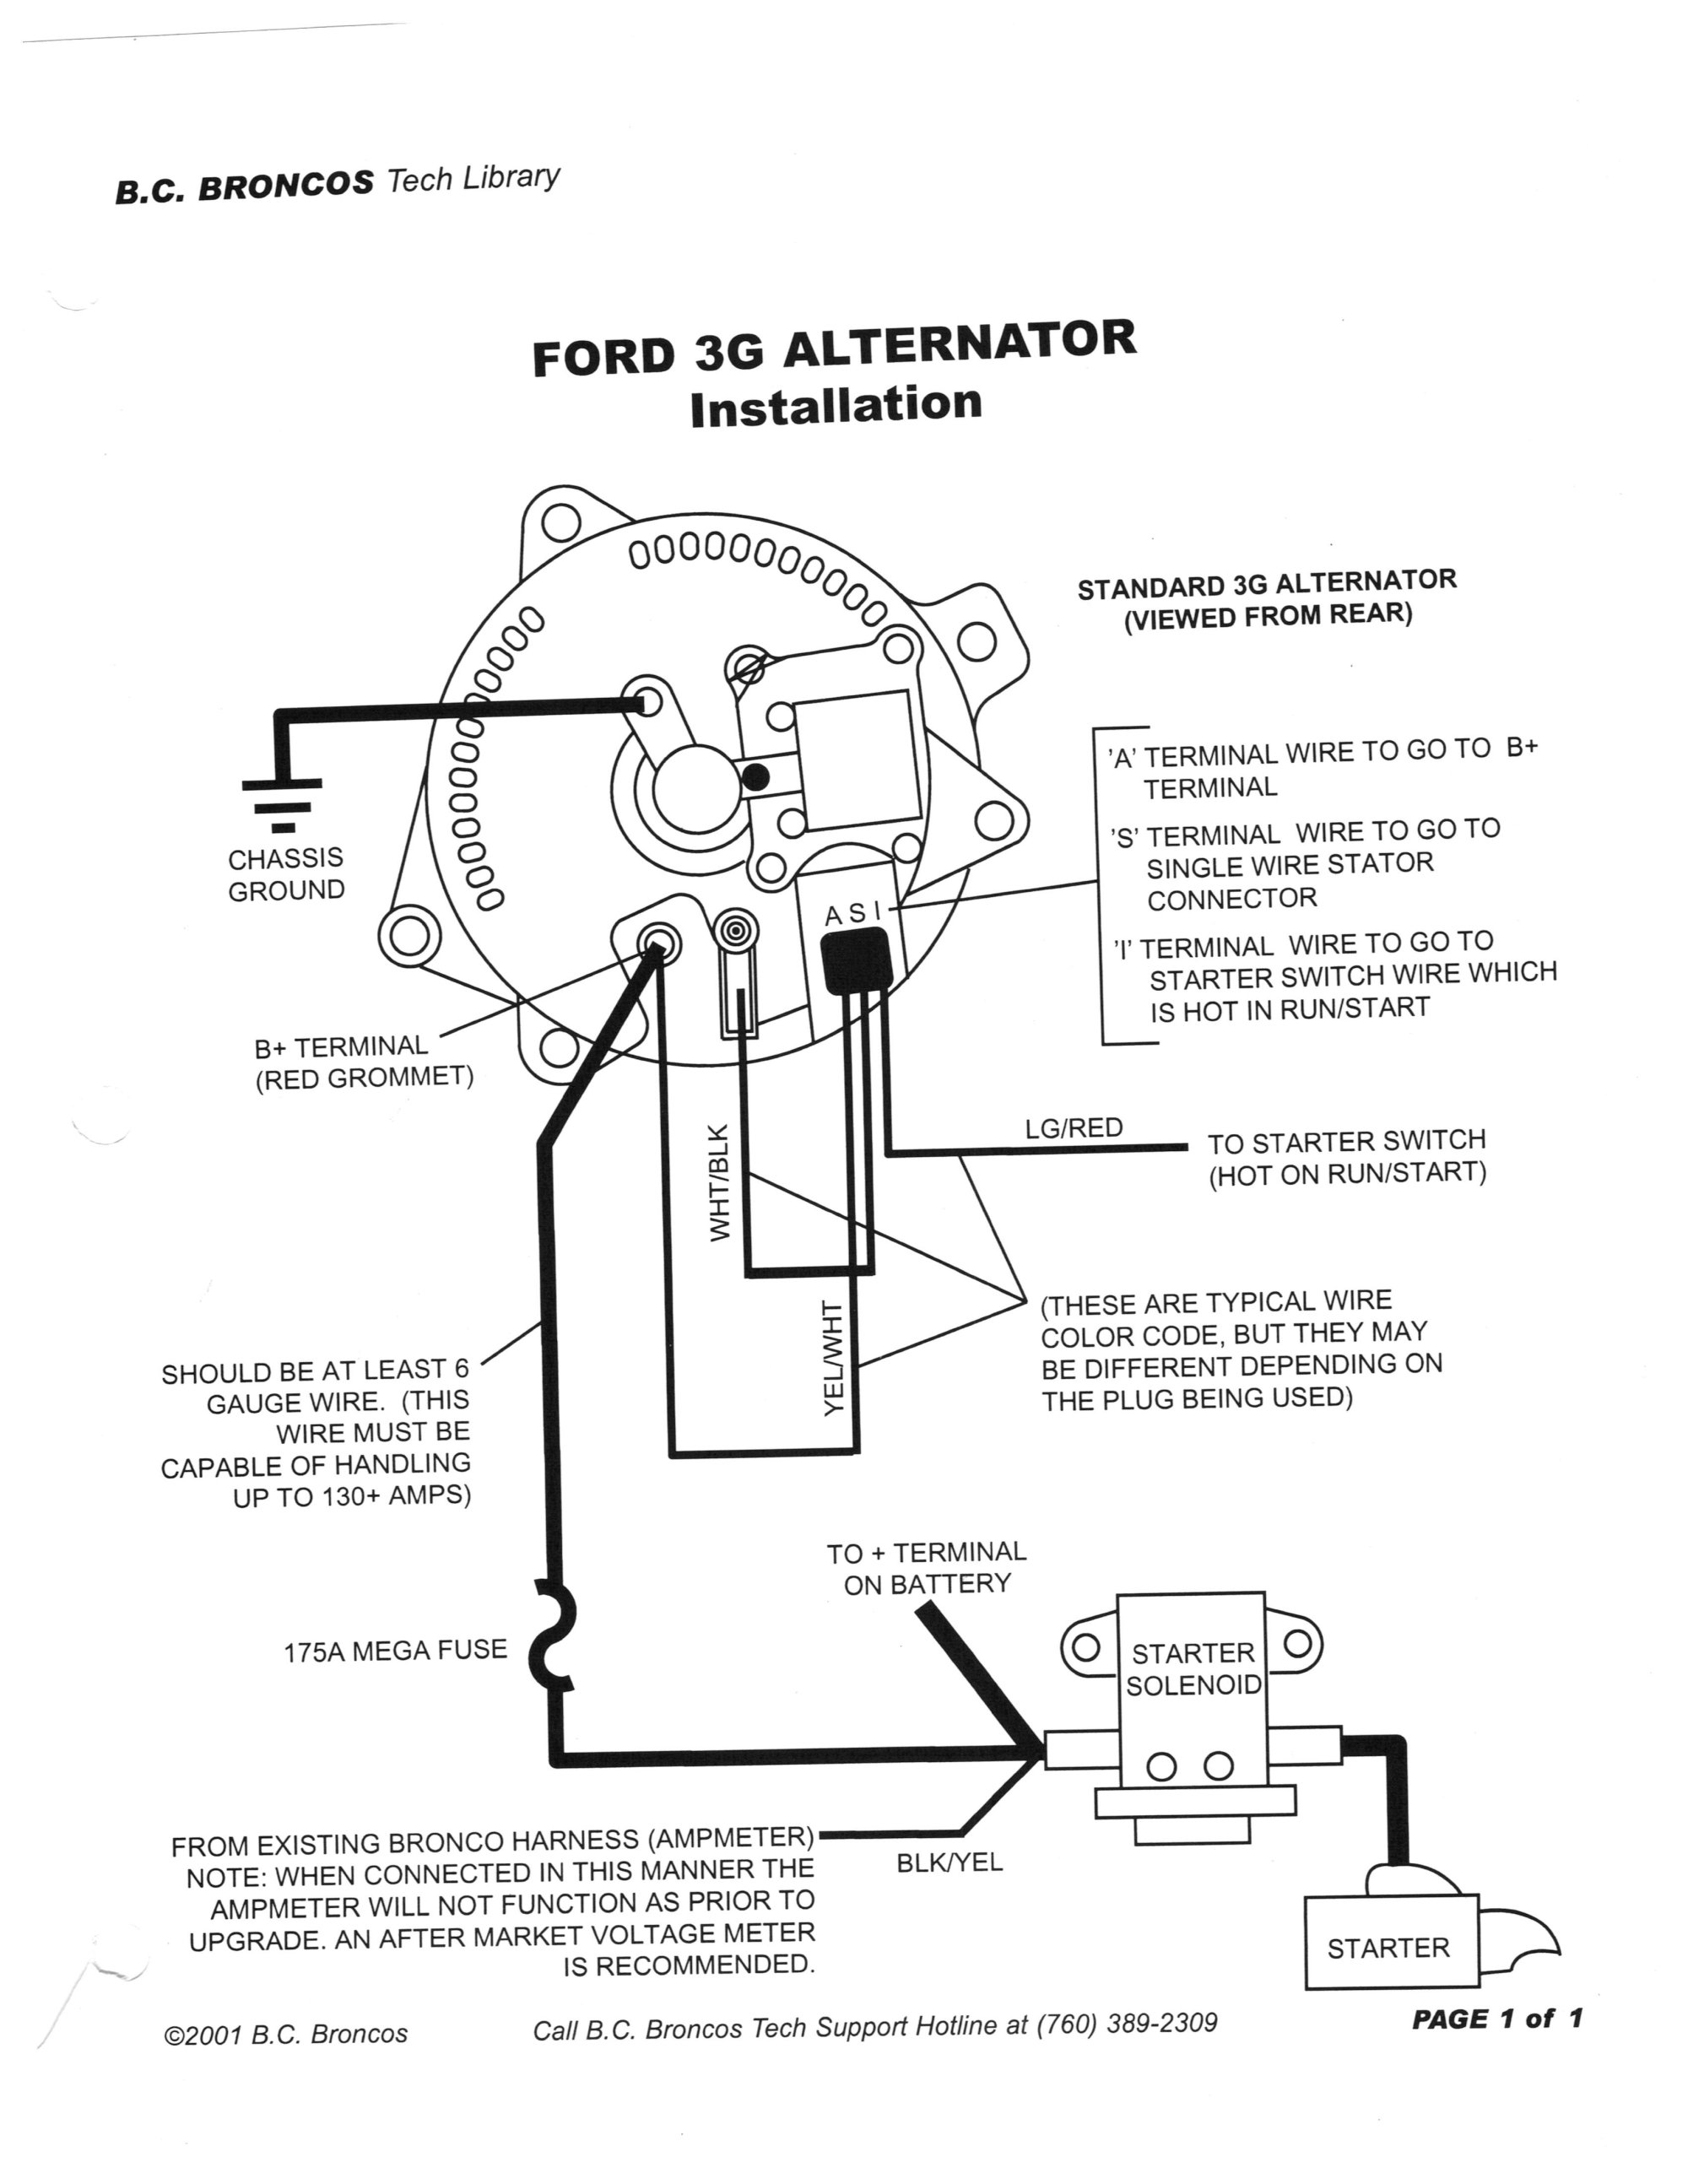 hight resolution of 1985 mustang alternator wiring diagram wiring diagrams favorites1983 ford mustang alternator wiring diagram free picture wiring